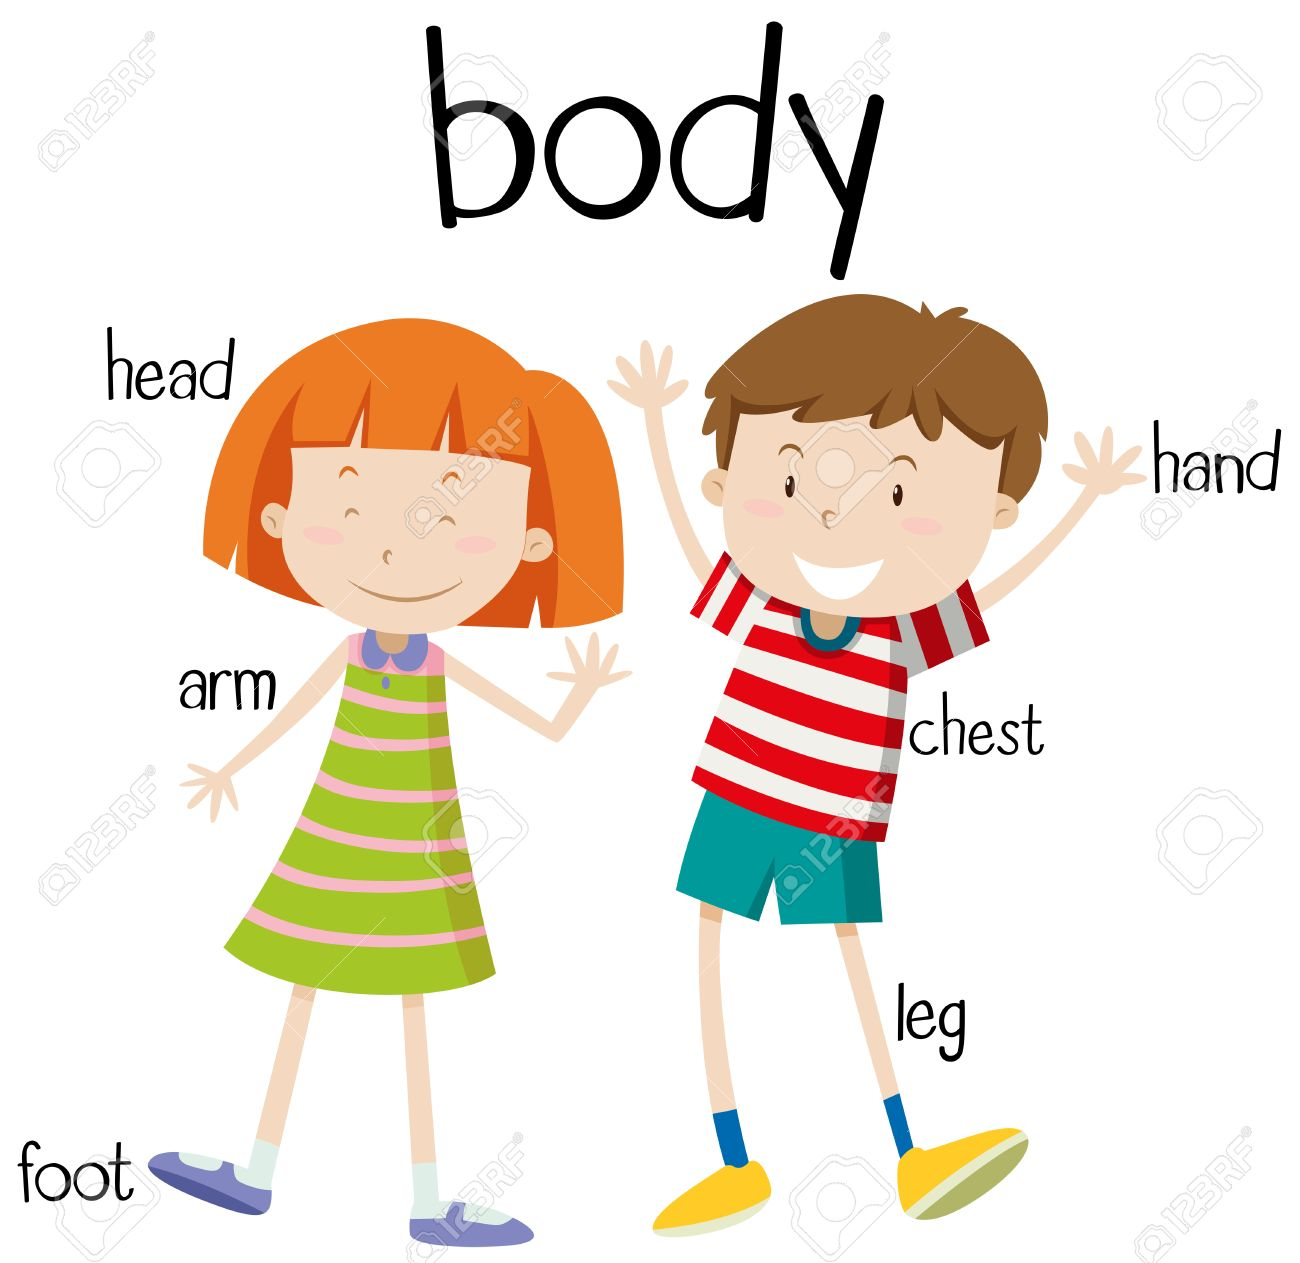 929 Body Parts free clipart.